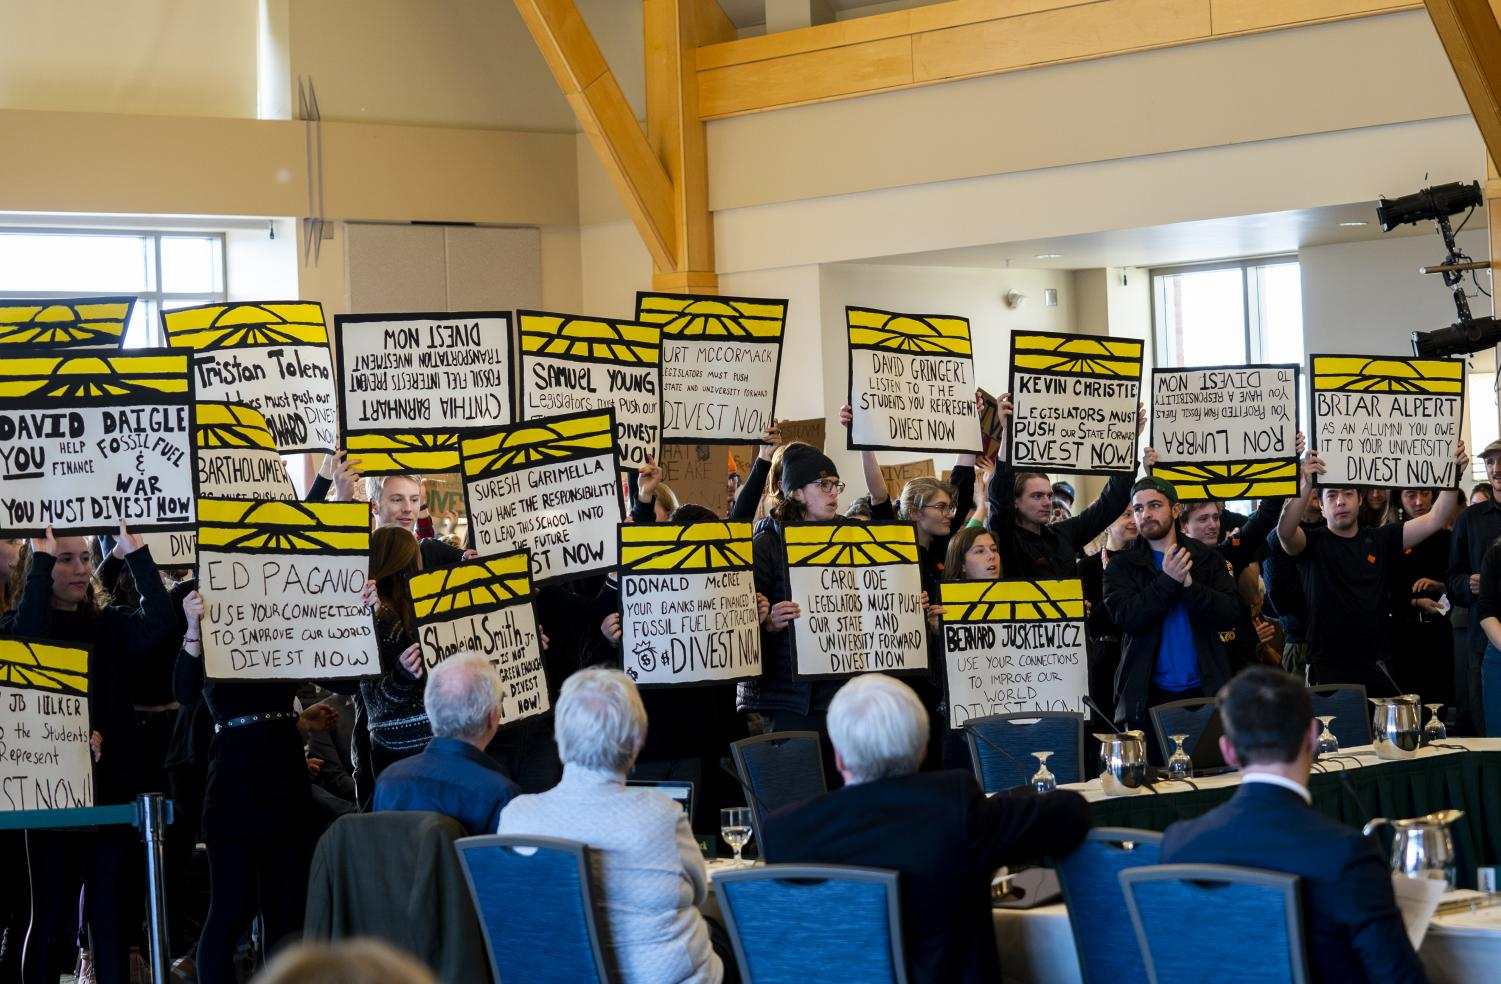 Student protesters hold hand-painted signs following the end of public comment. The group then began to sing,